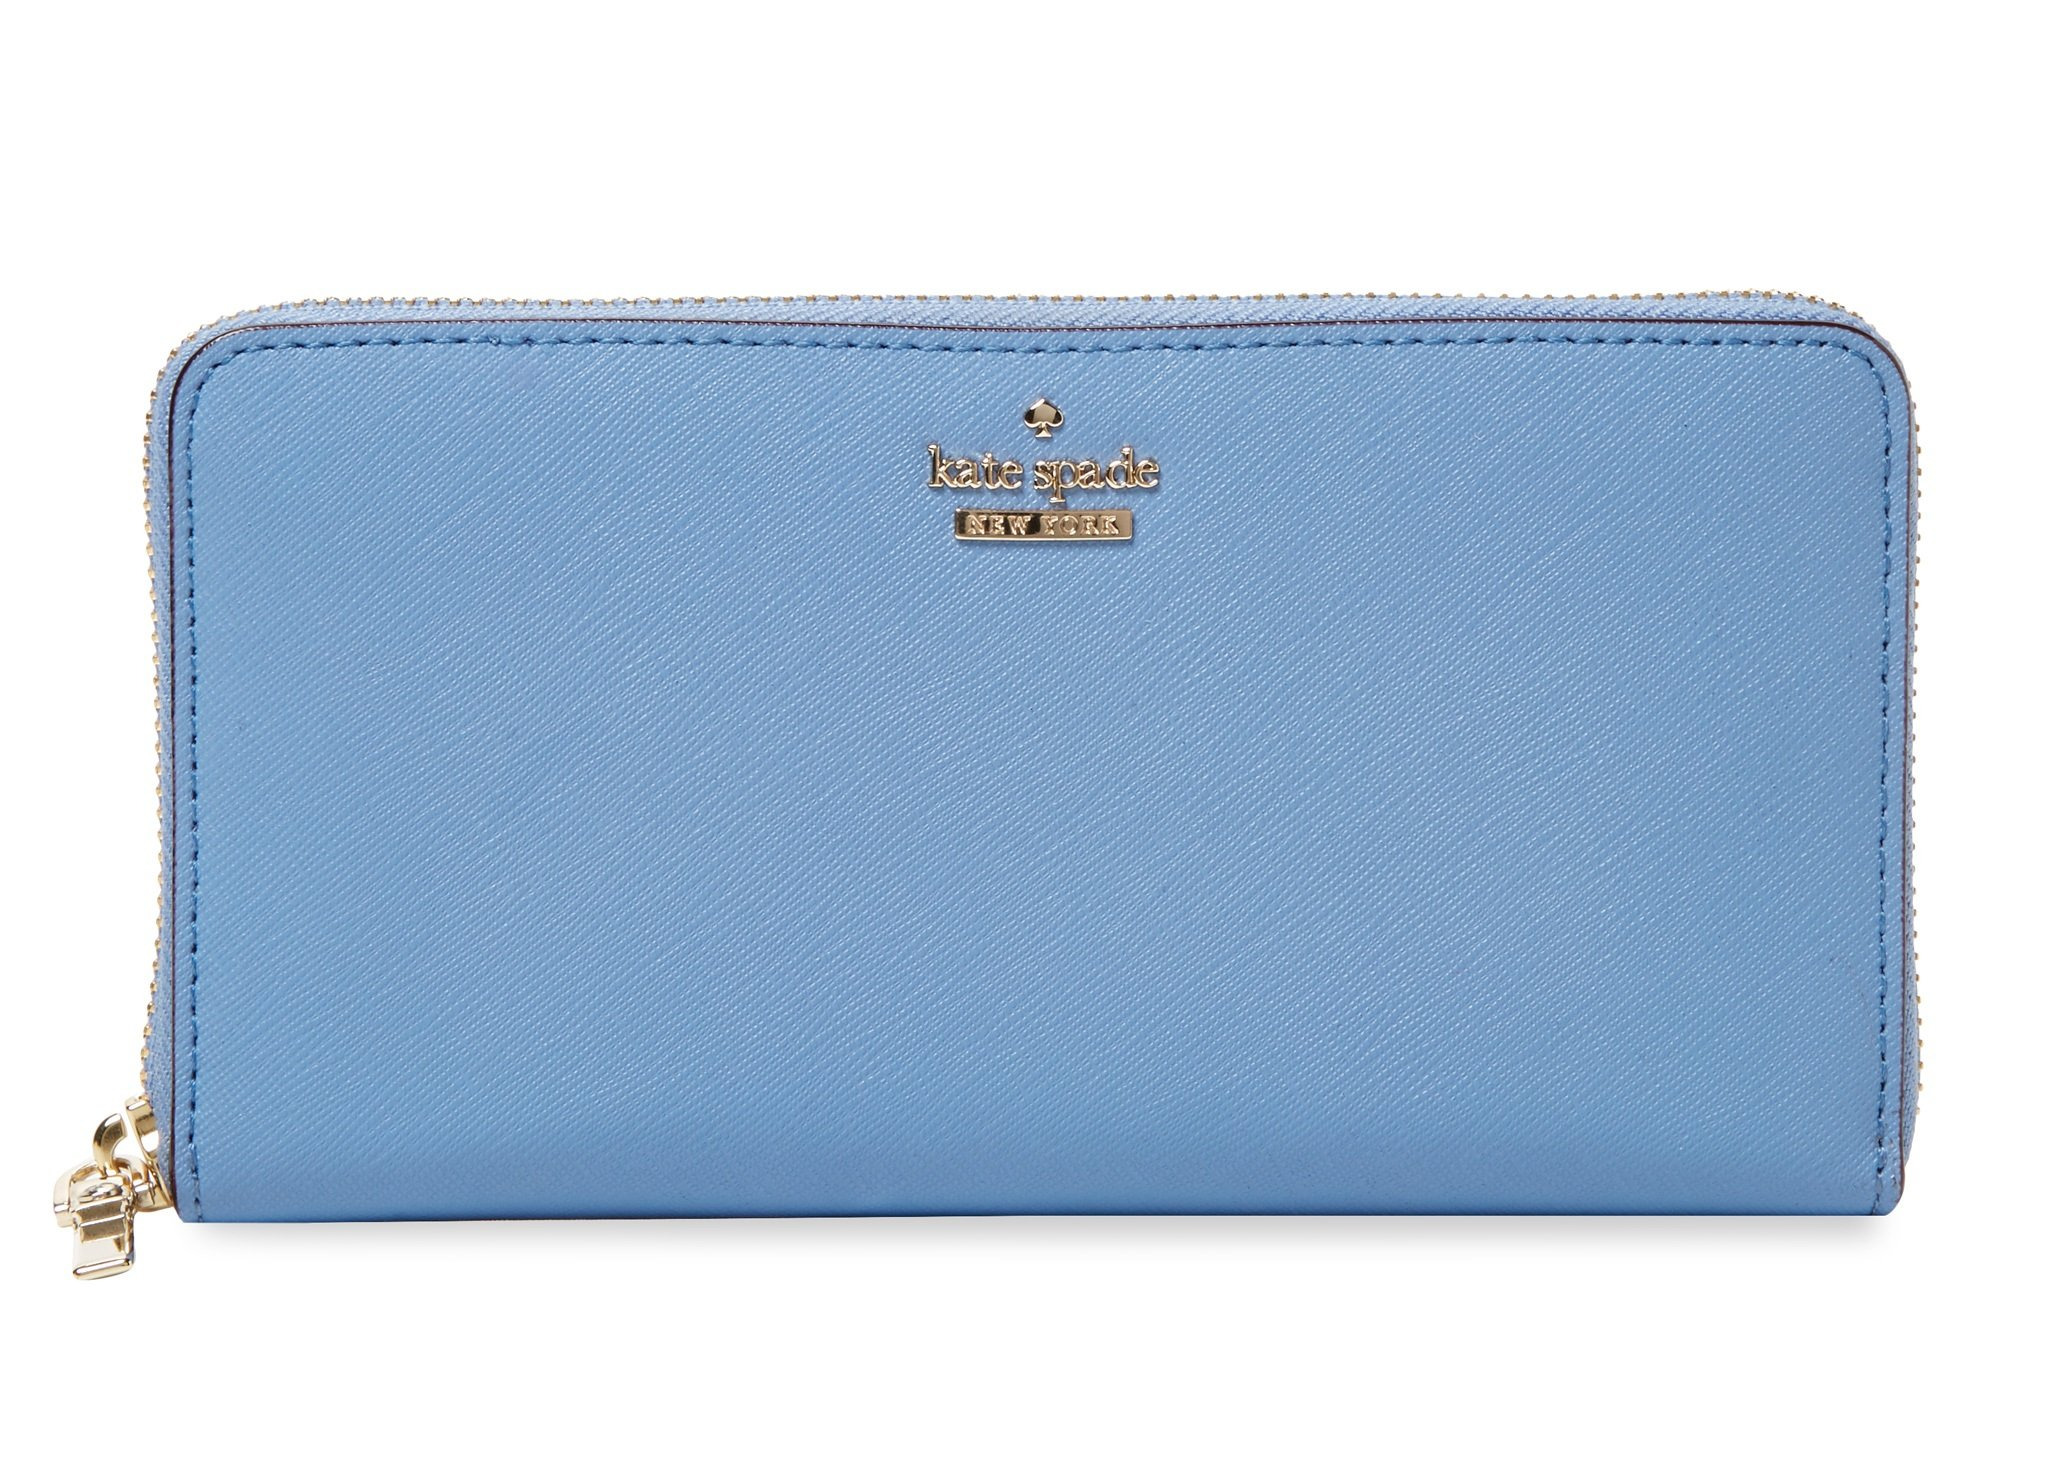 kate spade new york Women's Cameron Street Lacey, Tile Blue One Size